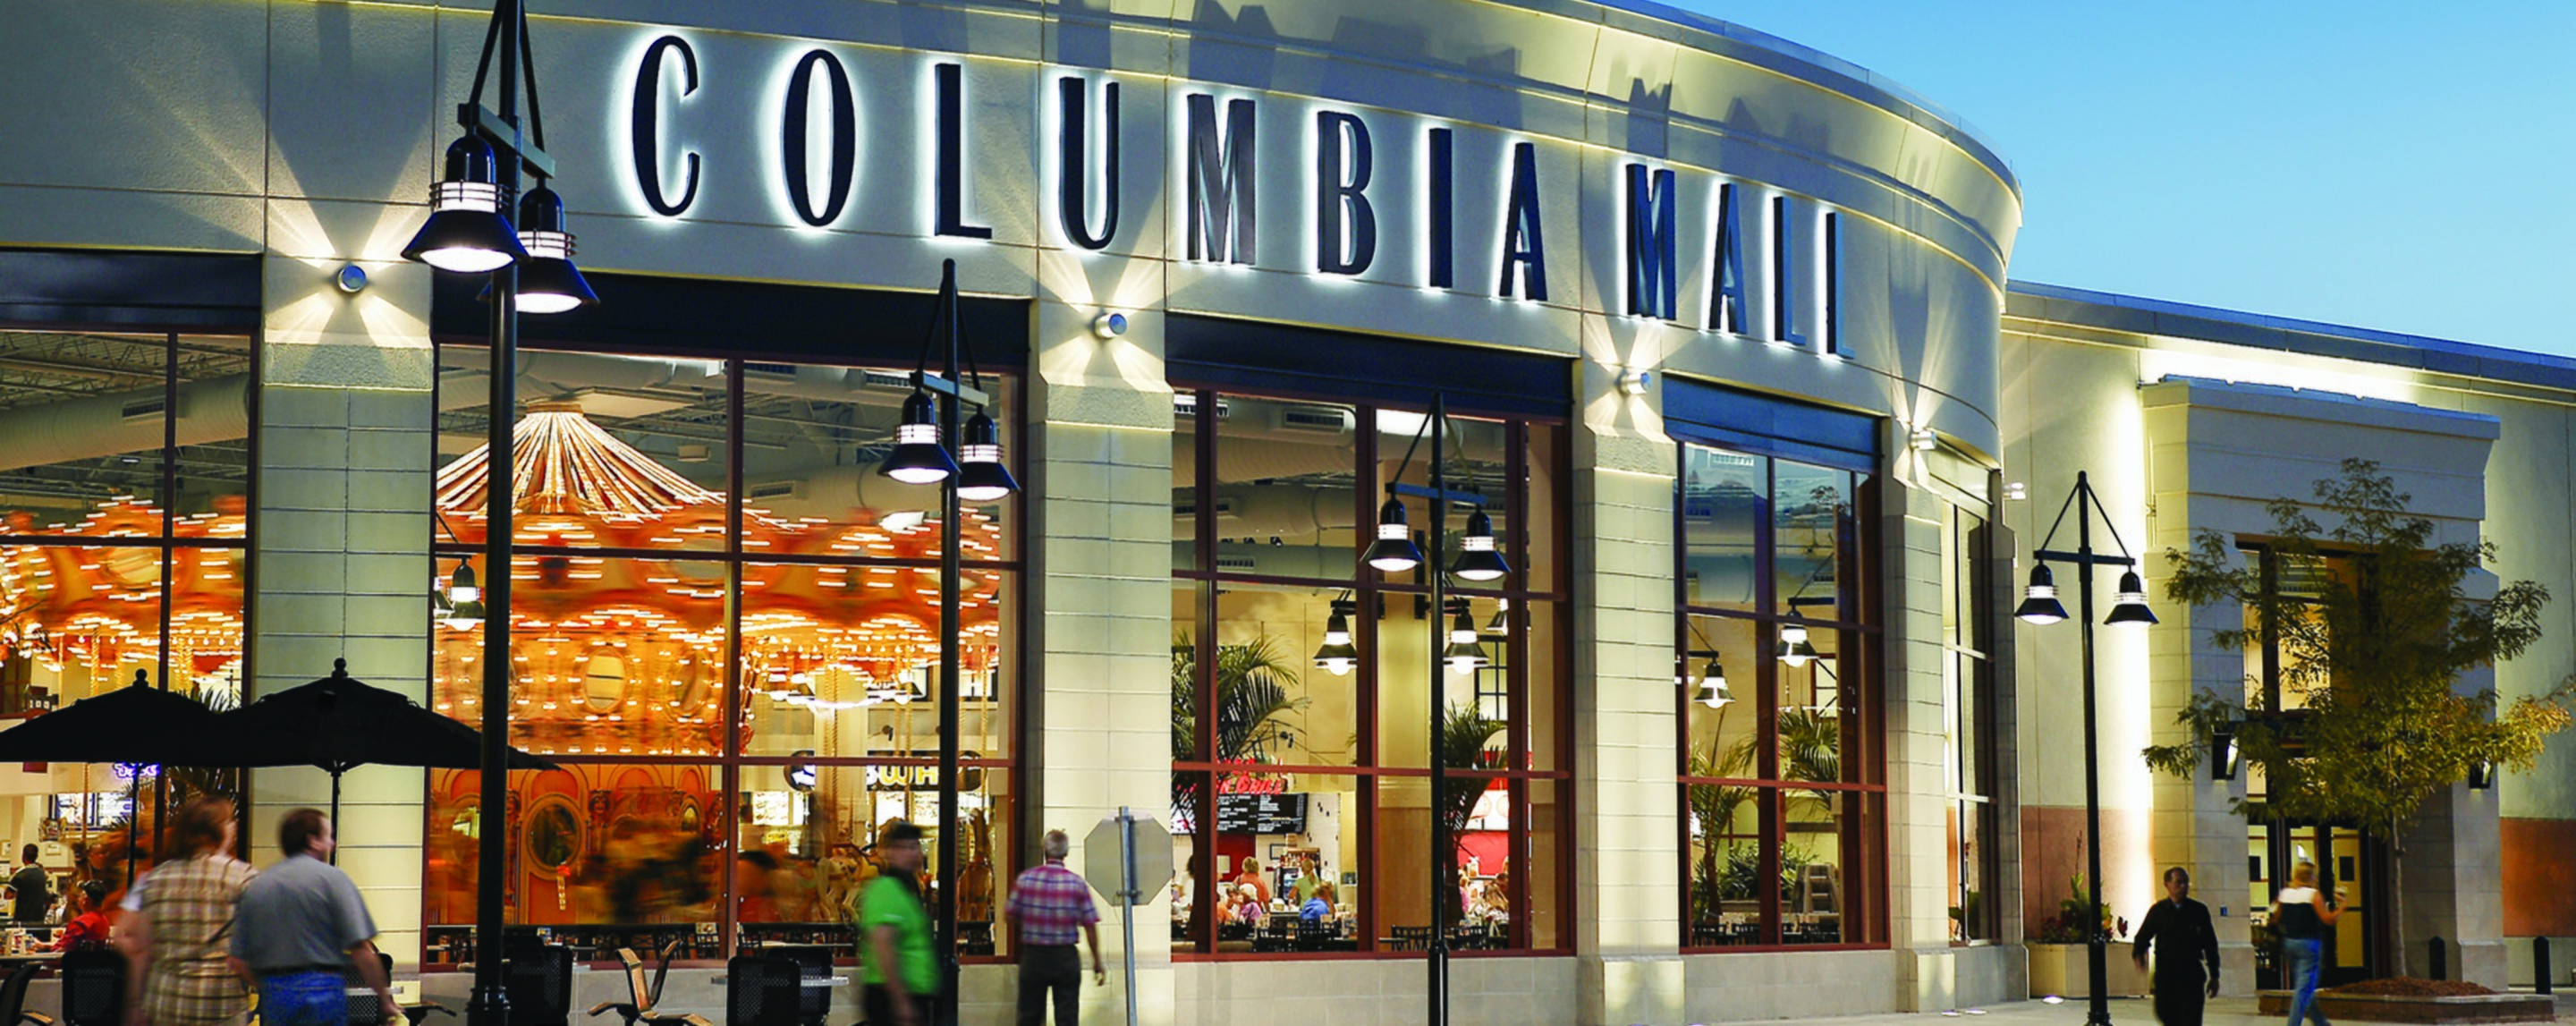 From outside, the Columbia Mall sign lights up at dusk and through the windows you can see a carousel in a common area.